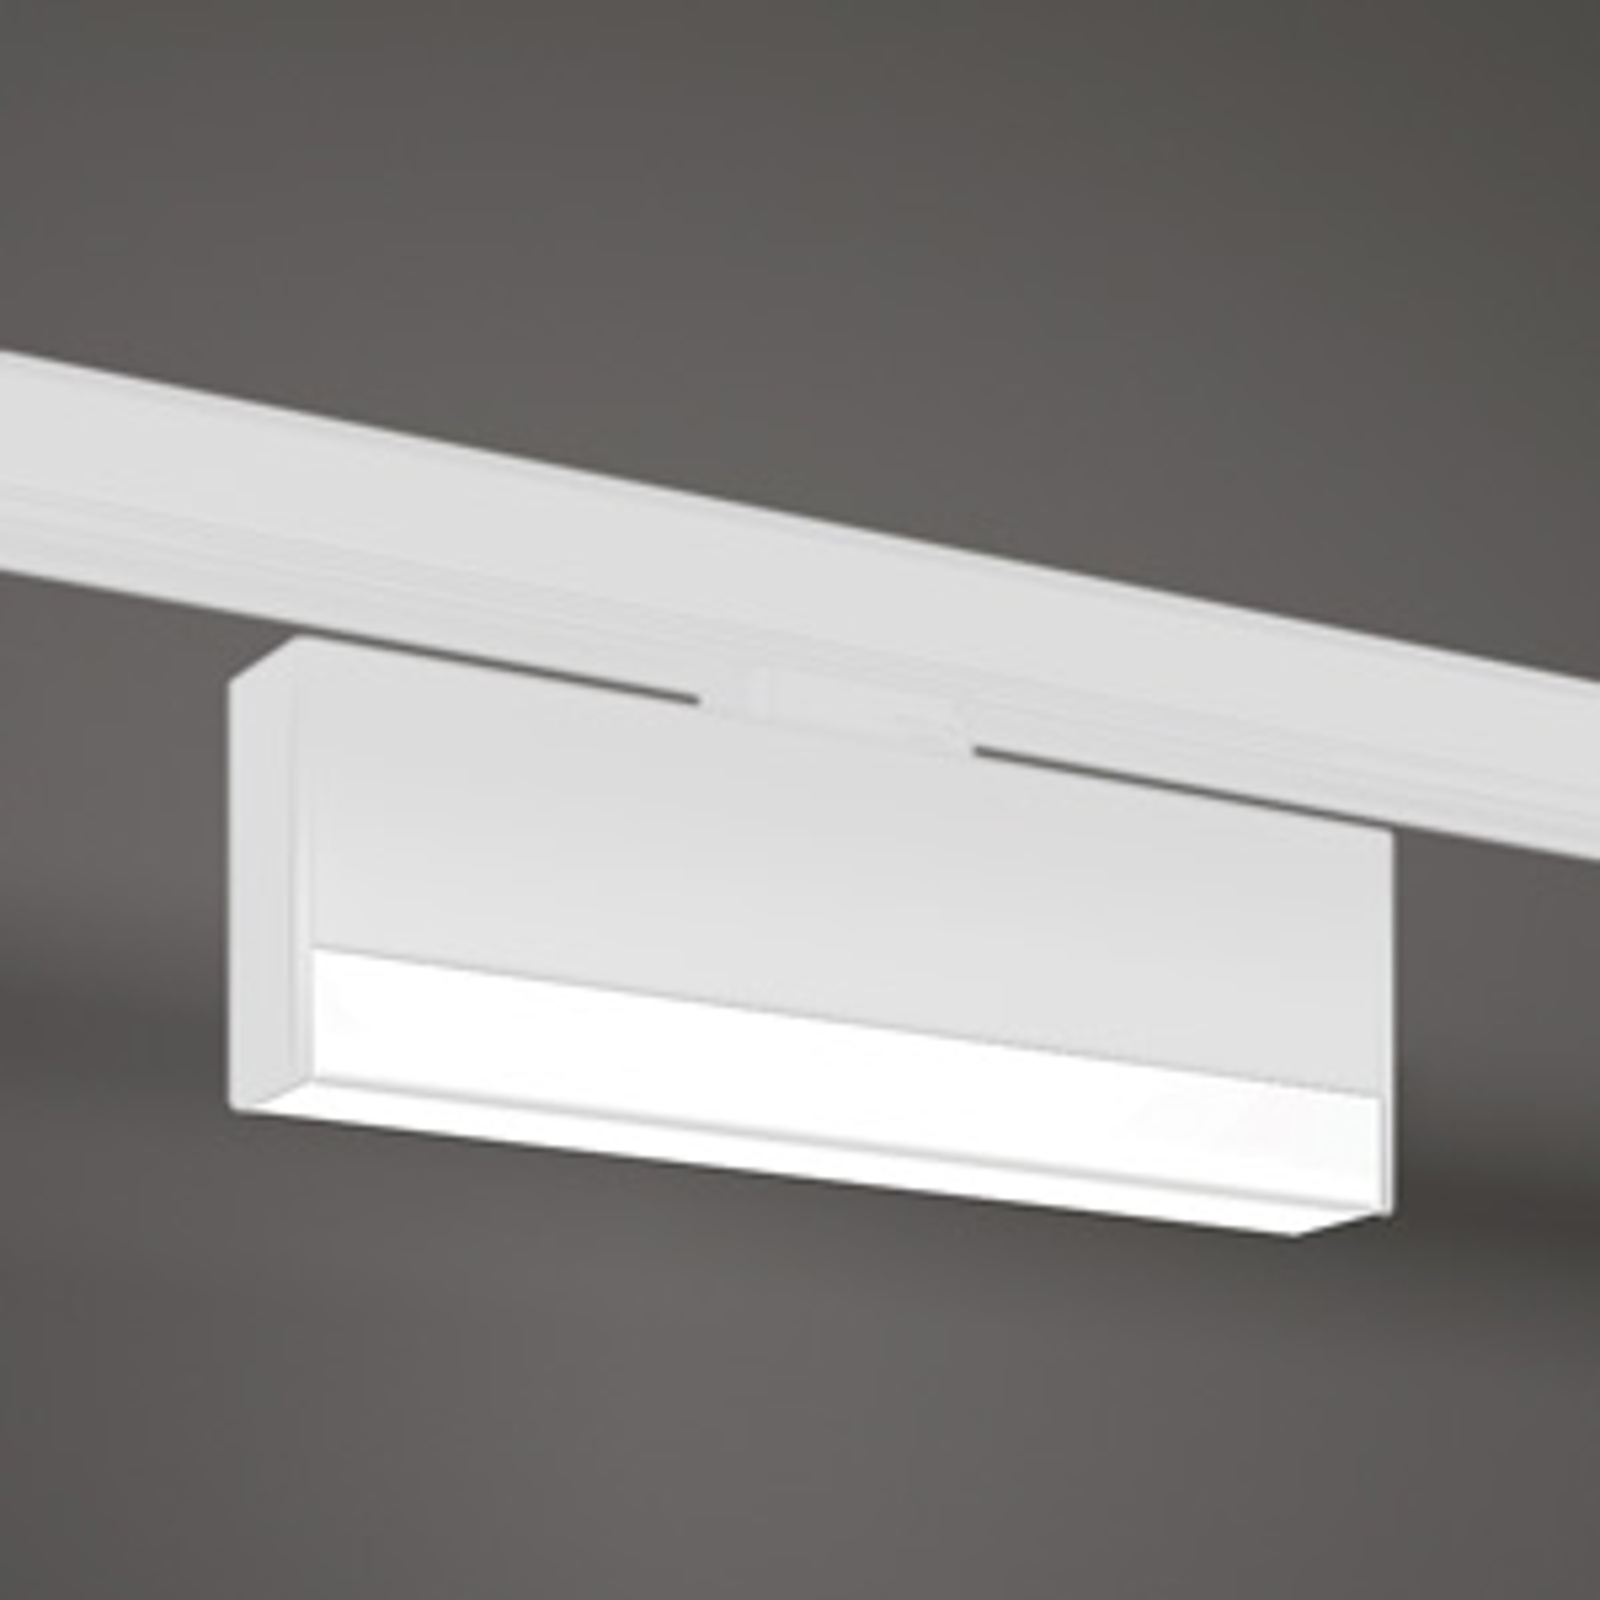 Tratto - LED lamp voor 3-fasen railsysteem